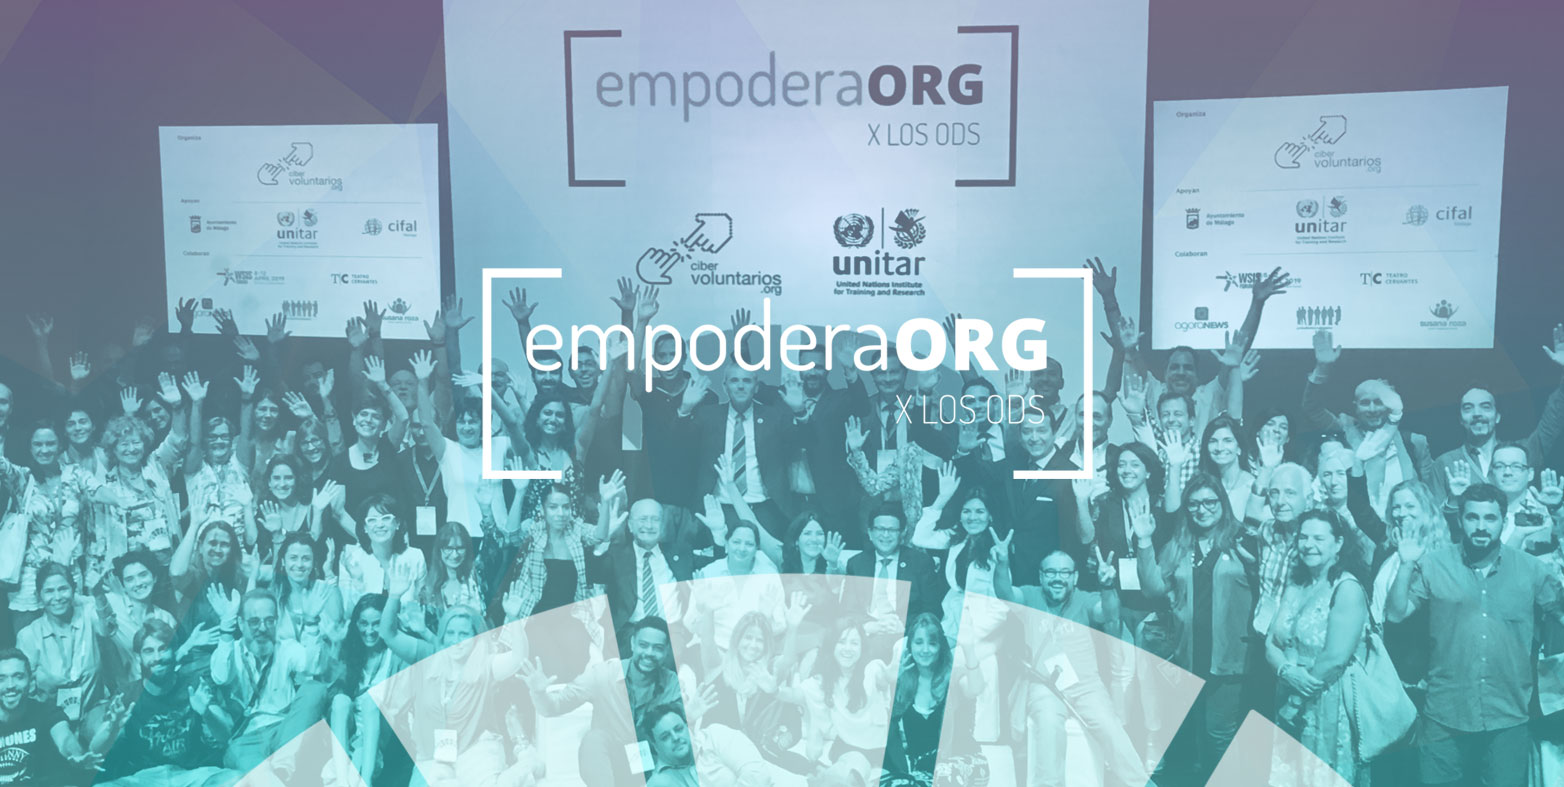 What happened in #EmpoderaxlosODS 2018: the year of the initiatives for the Sustainable Development Goals